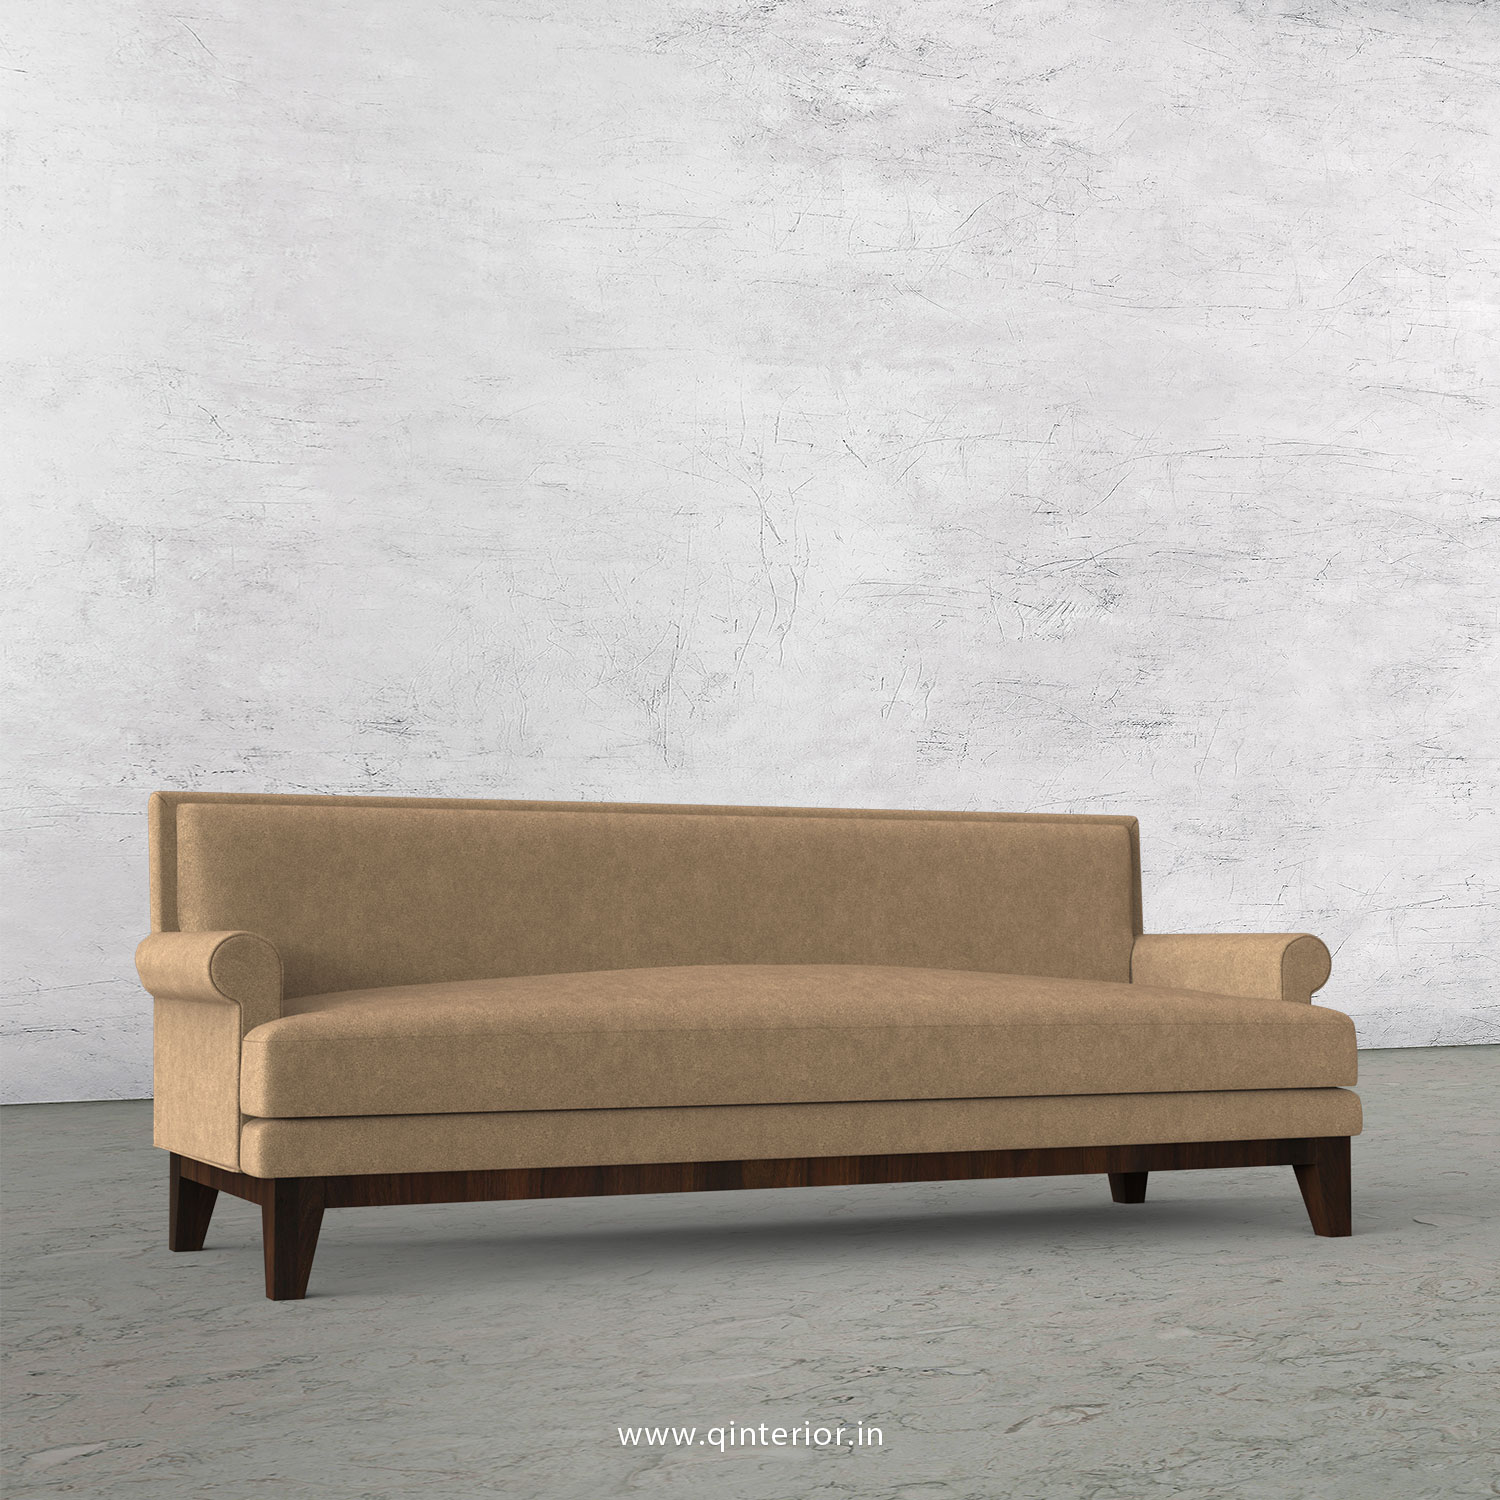 Aviana 3 Seater Sofa in Velvet Fabric - SFA001 VL03